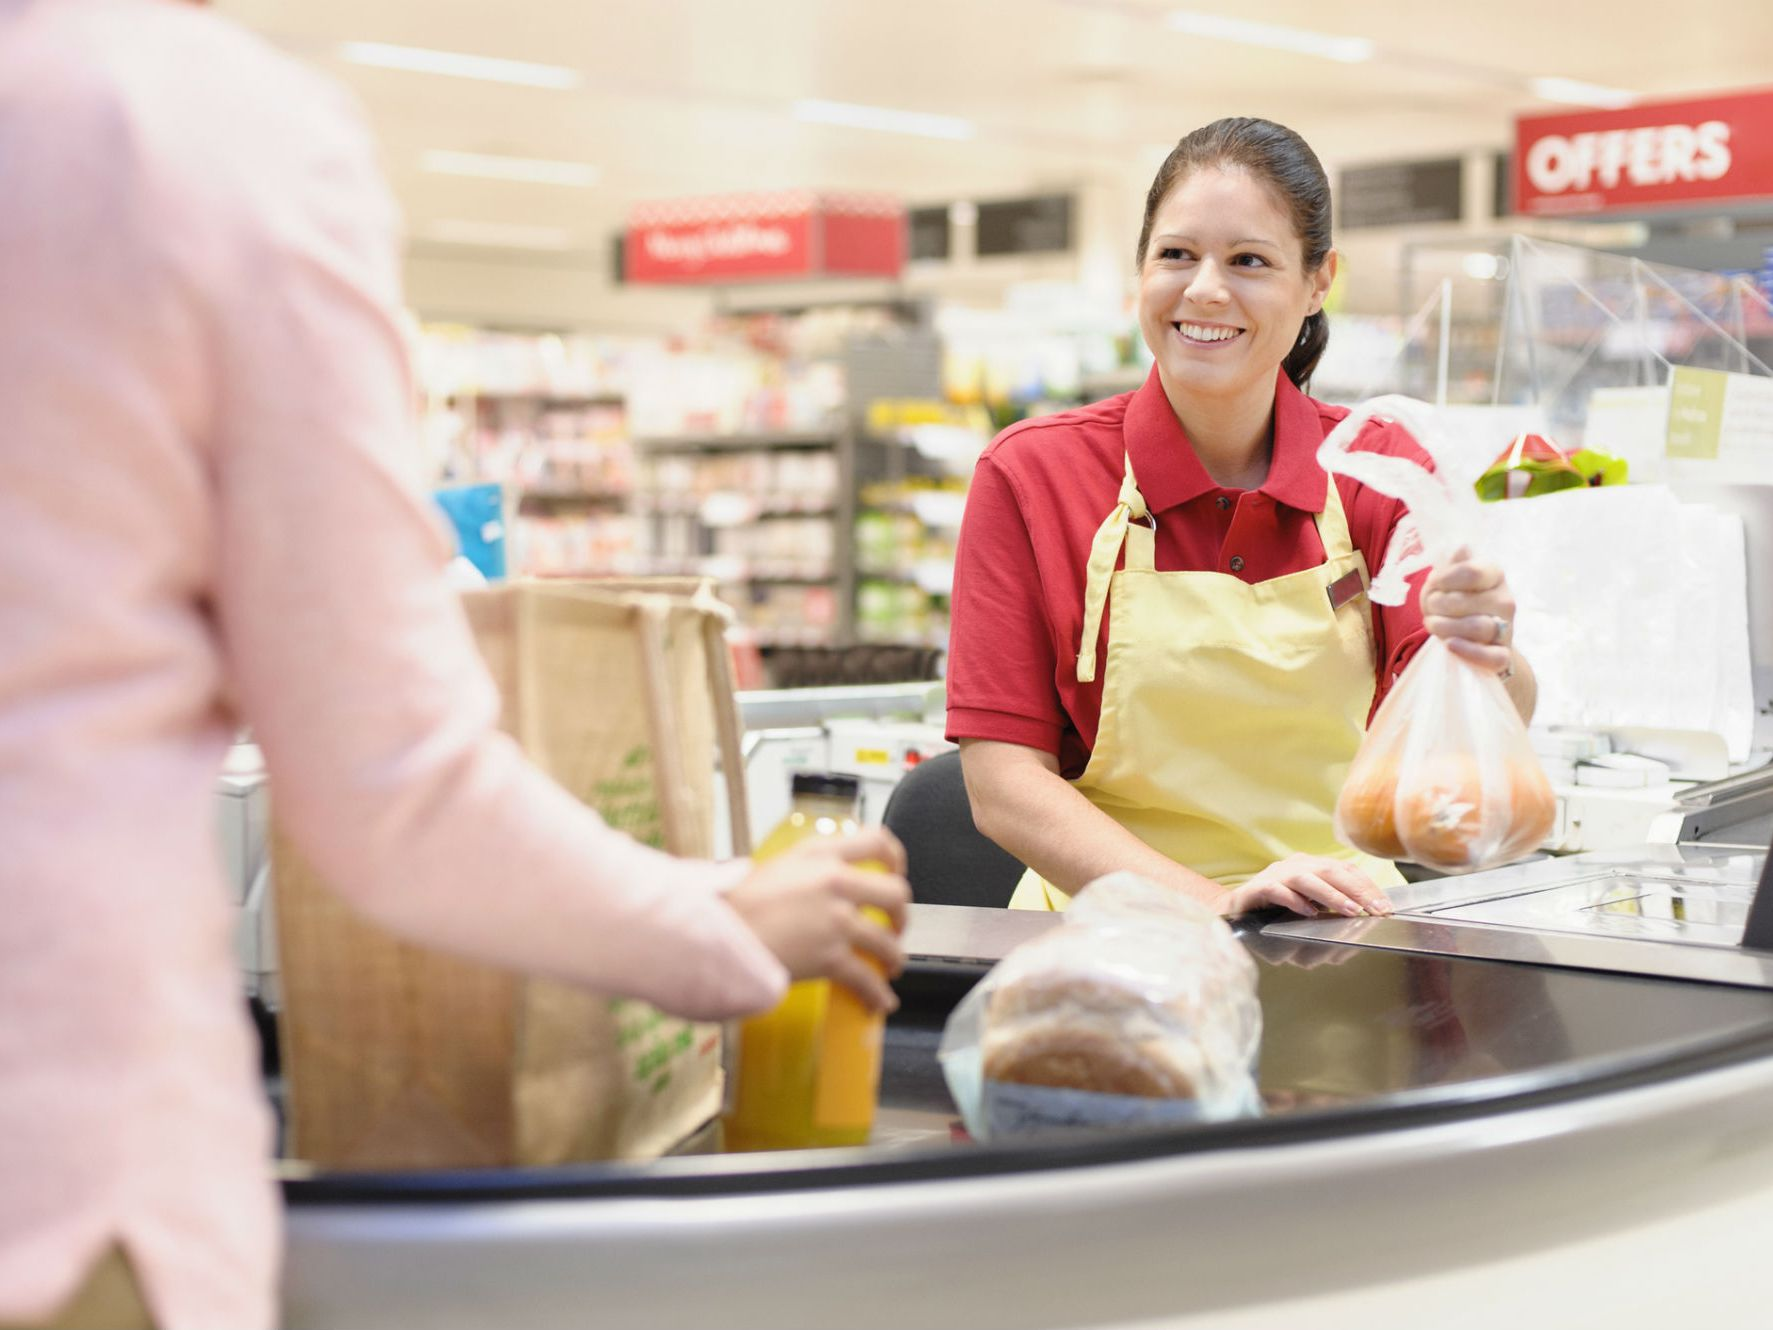 What Is the Role of a Cashier?